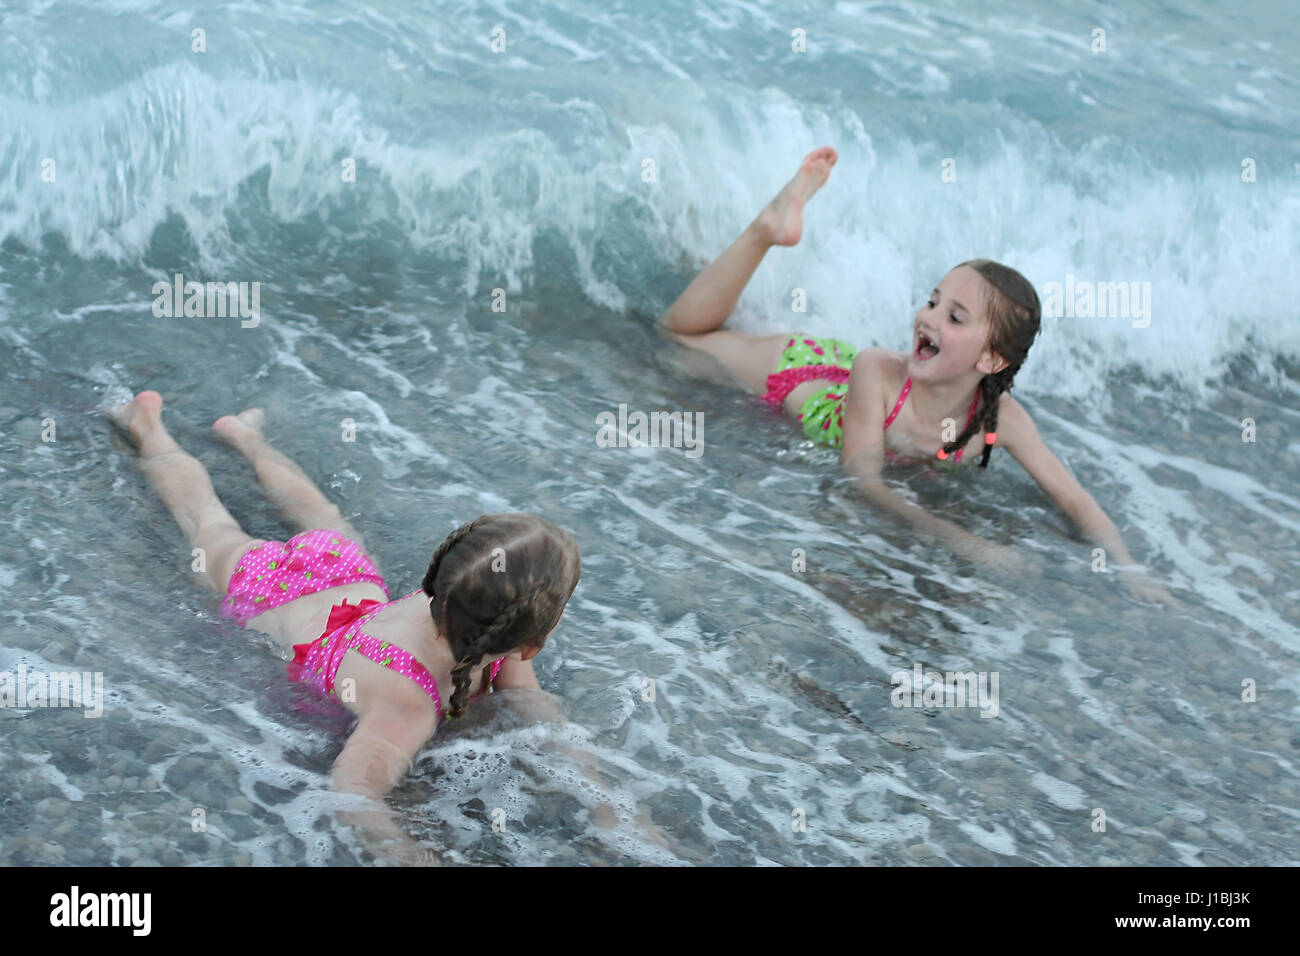 Sisters, children having great fun playing in white foamy waves on a stony beach at sunset, happiness concept, joy - Stock Image